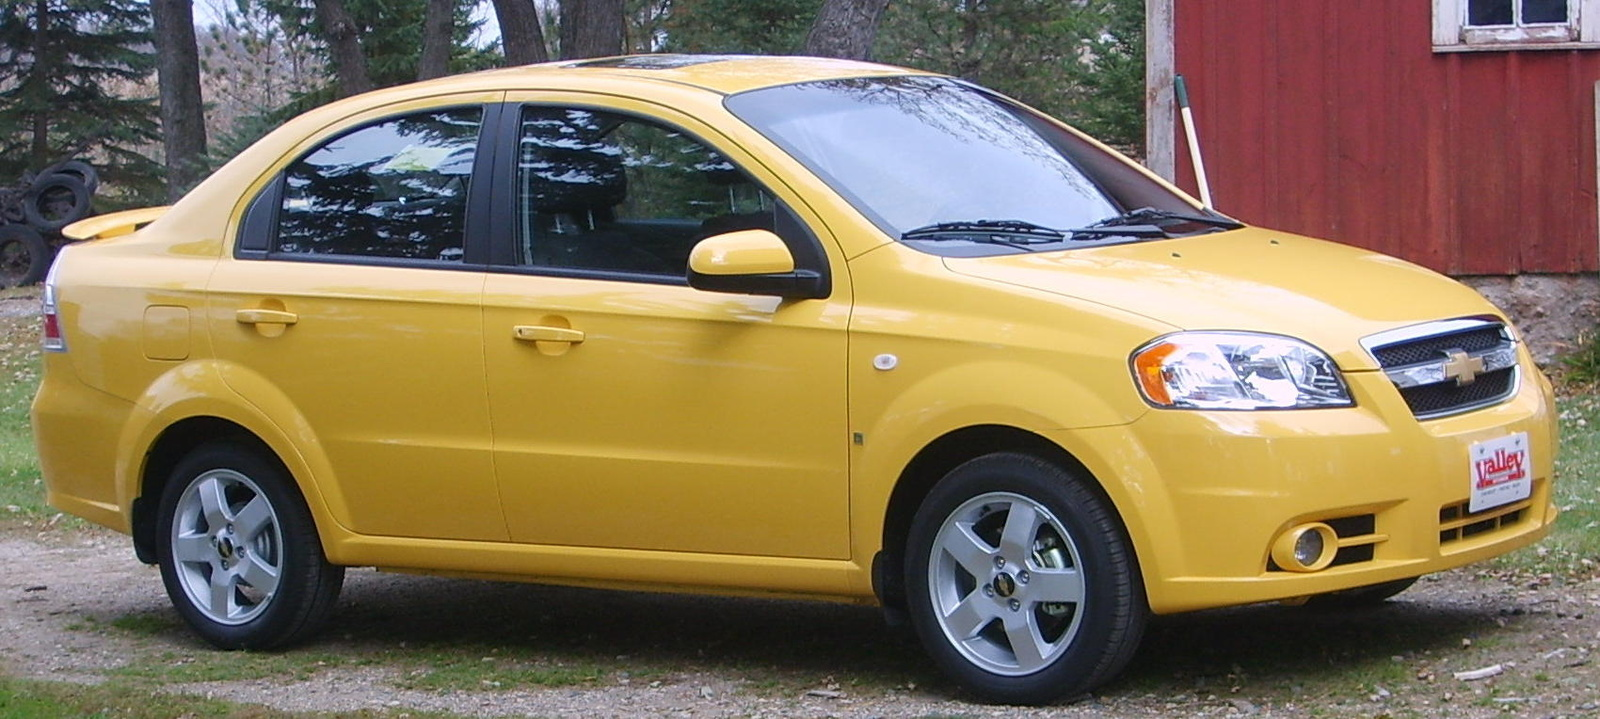 All Chevy chevy aveo 2007 : 2007 Chevrolet Aveo – pictures, information and specs - Auto ...